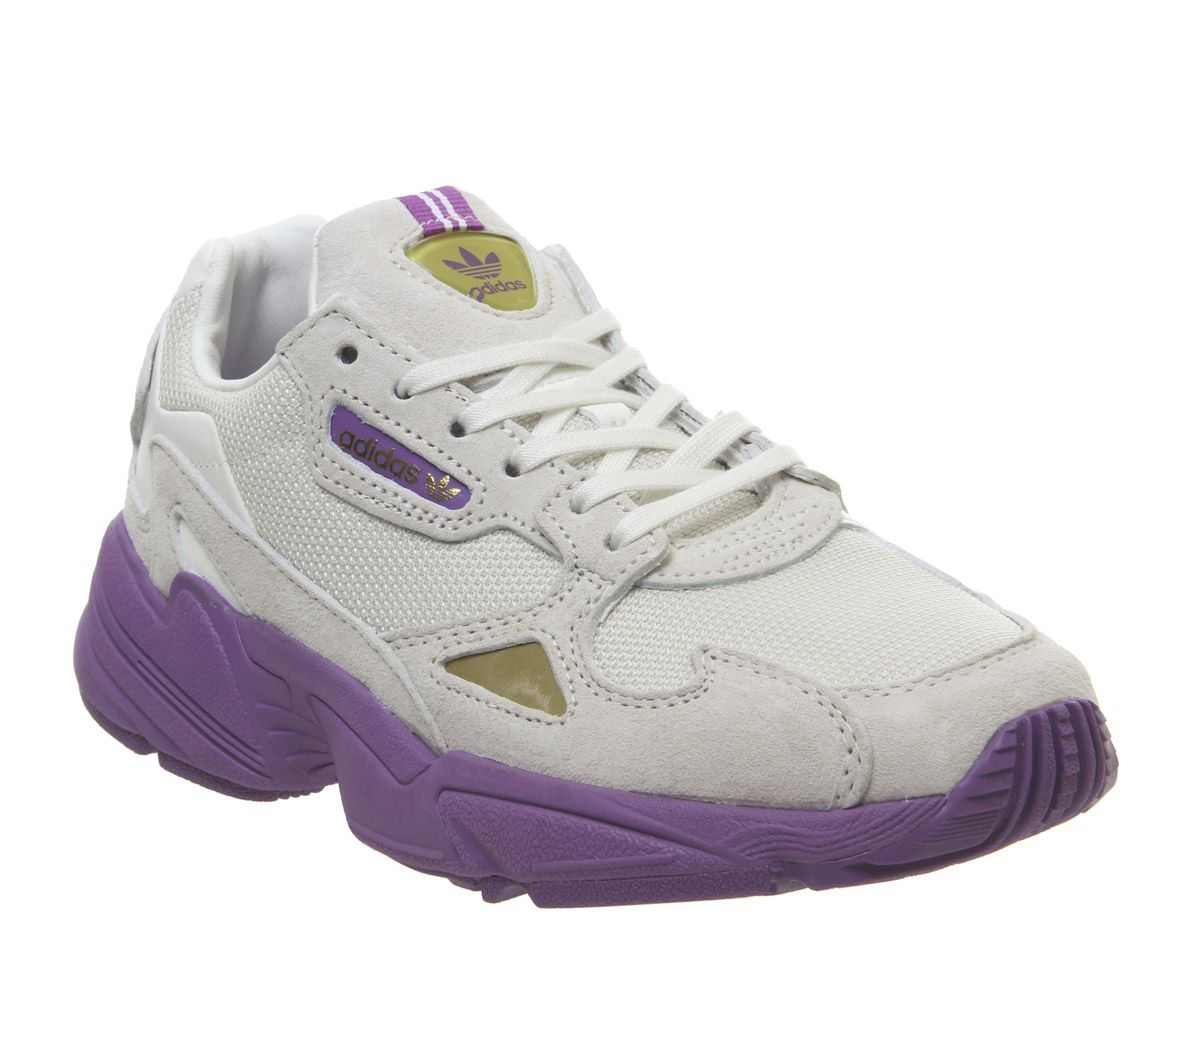 new style 05855 43f72 adidas Falcon Trainers White Purple Gold Metallic Elizabeth Tfl ...